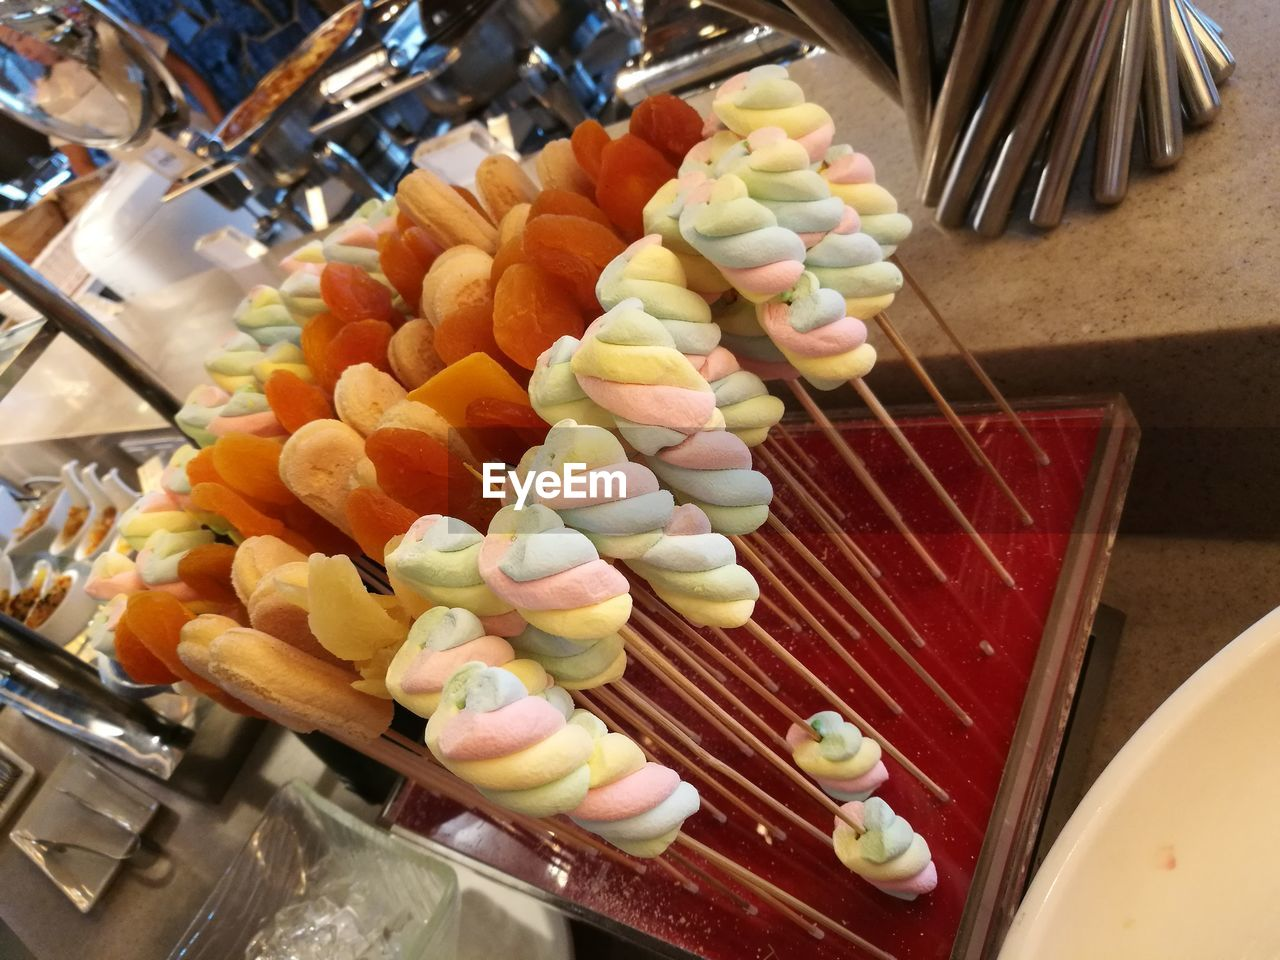 food, food and drink, sweet food, freshness, sweet, indoors, choice, variation, multi colored, no people, business, retail, indulgence, large group of objects, still life, skewer, arrangement, high angle view, dessert, temptation, order, retail display, tray